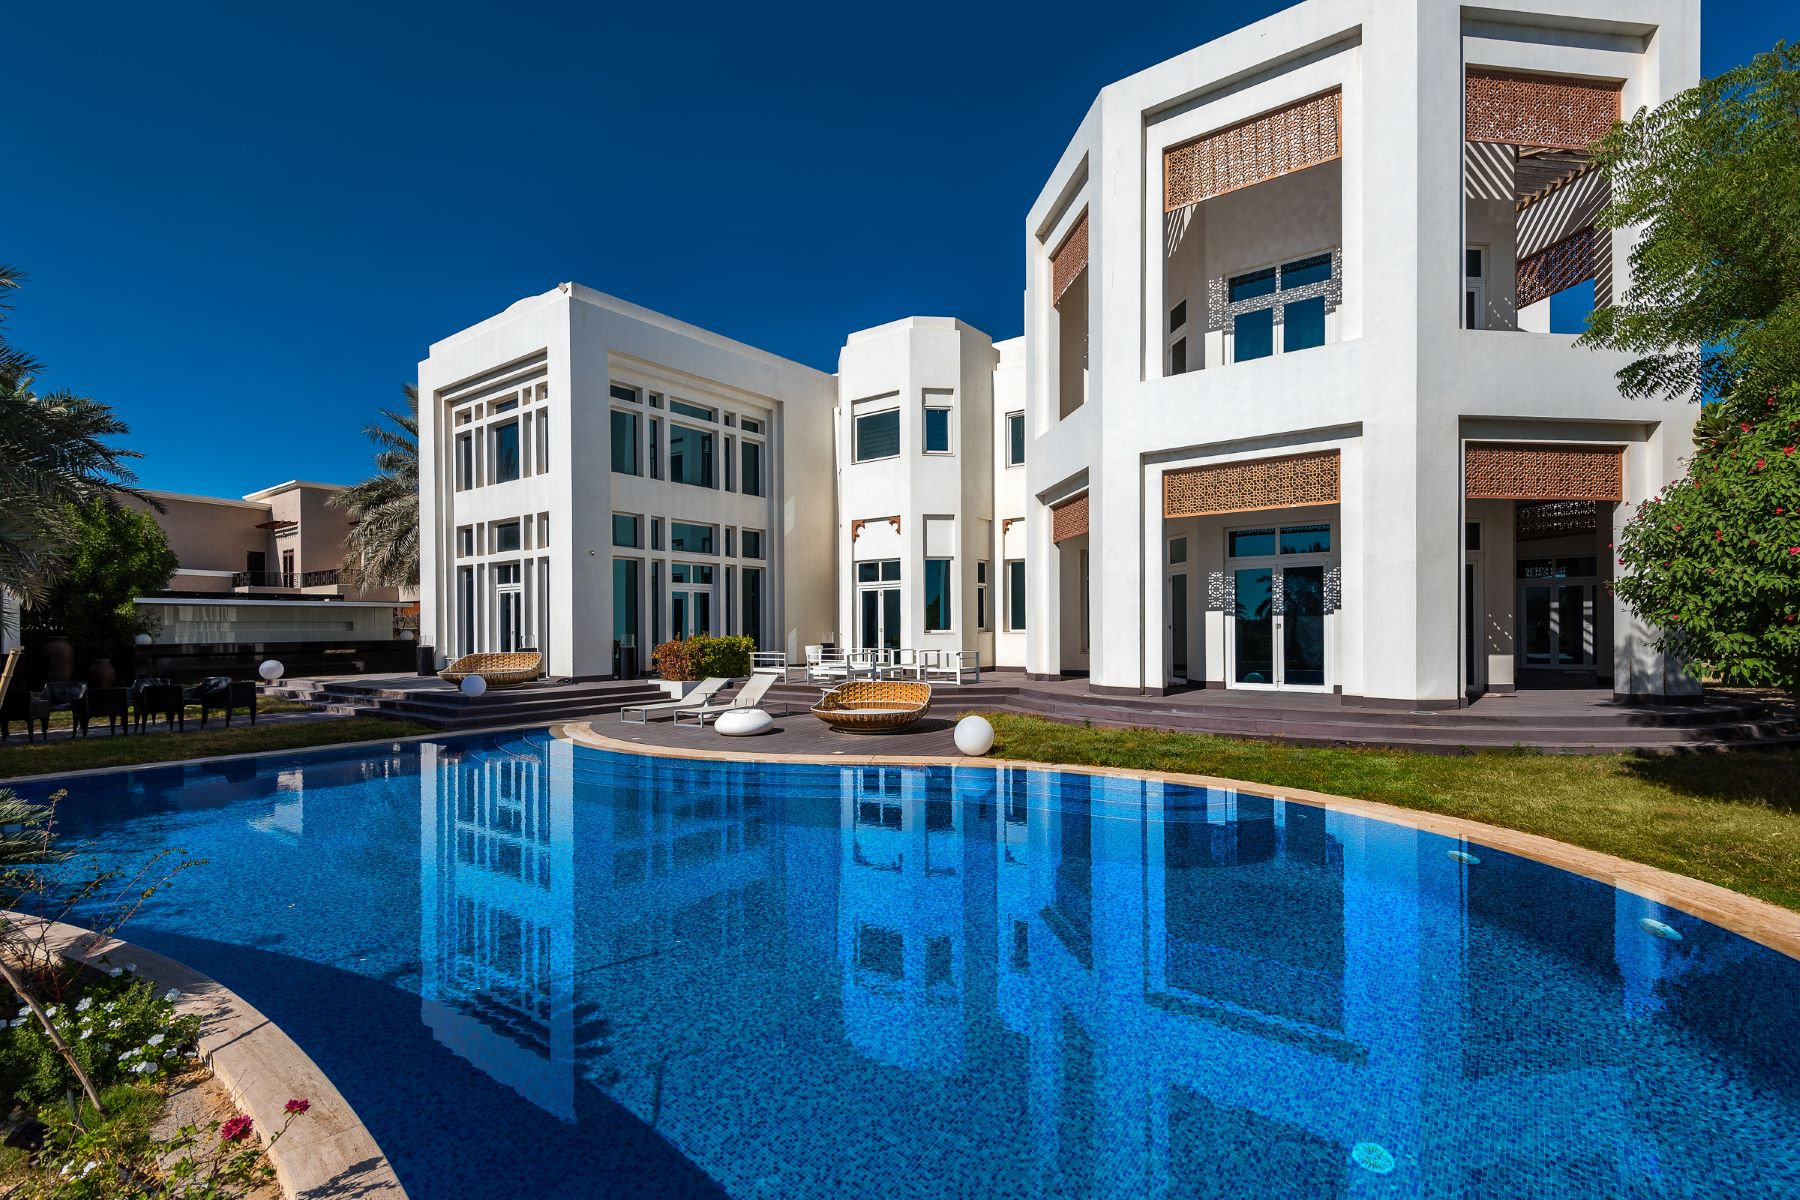 Other Residential Homes 용 임대 에 Luxury Villa 7 Bedroom Golf and Lake Views Dubai, 두바이 아랍에미리트